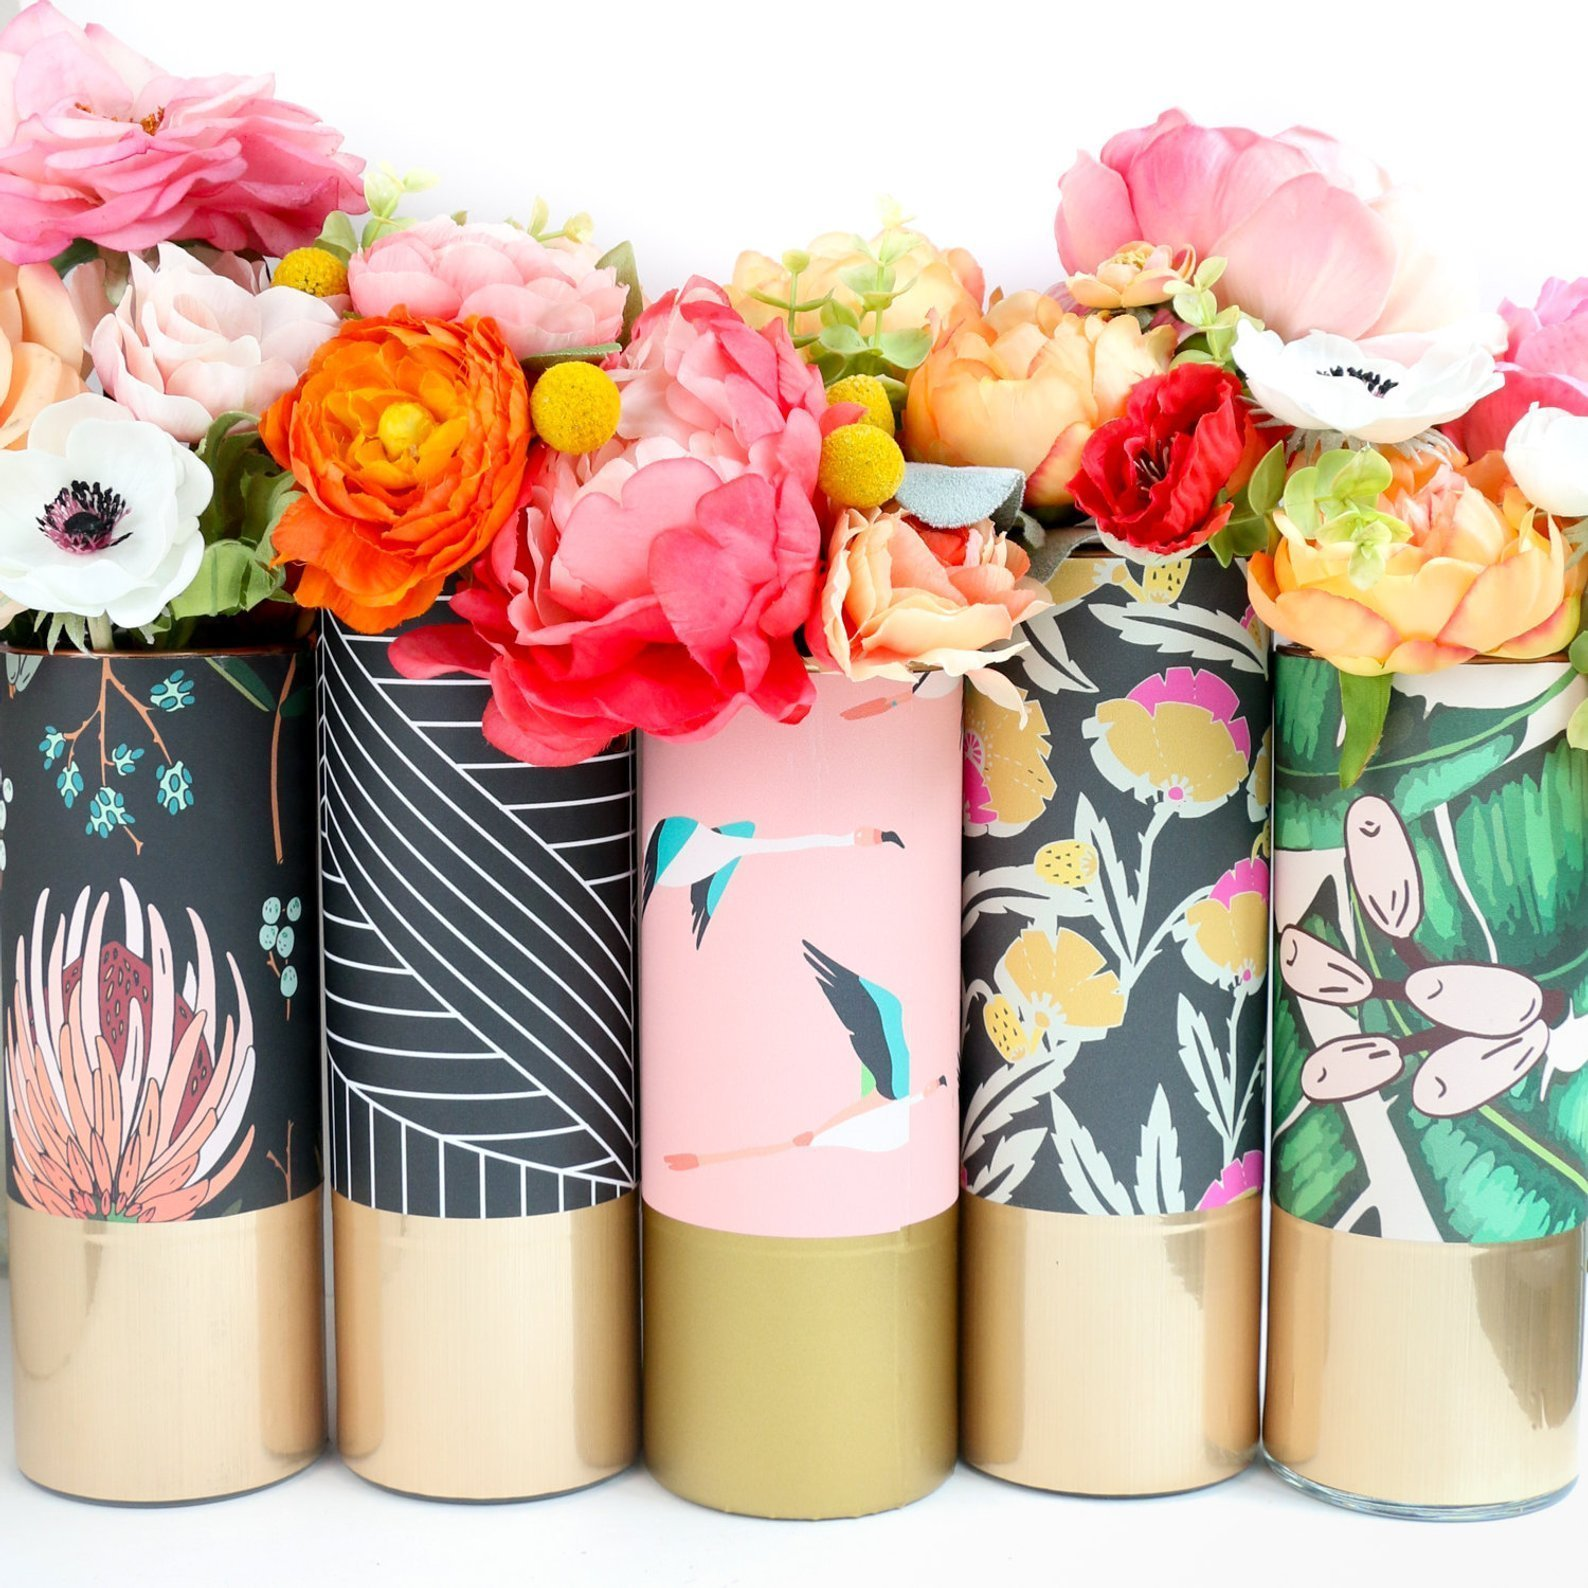 5 colorful flower vases filled with flowers